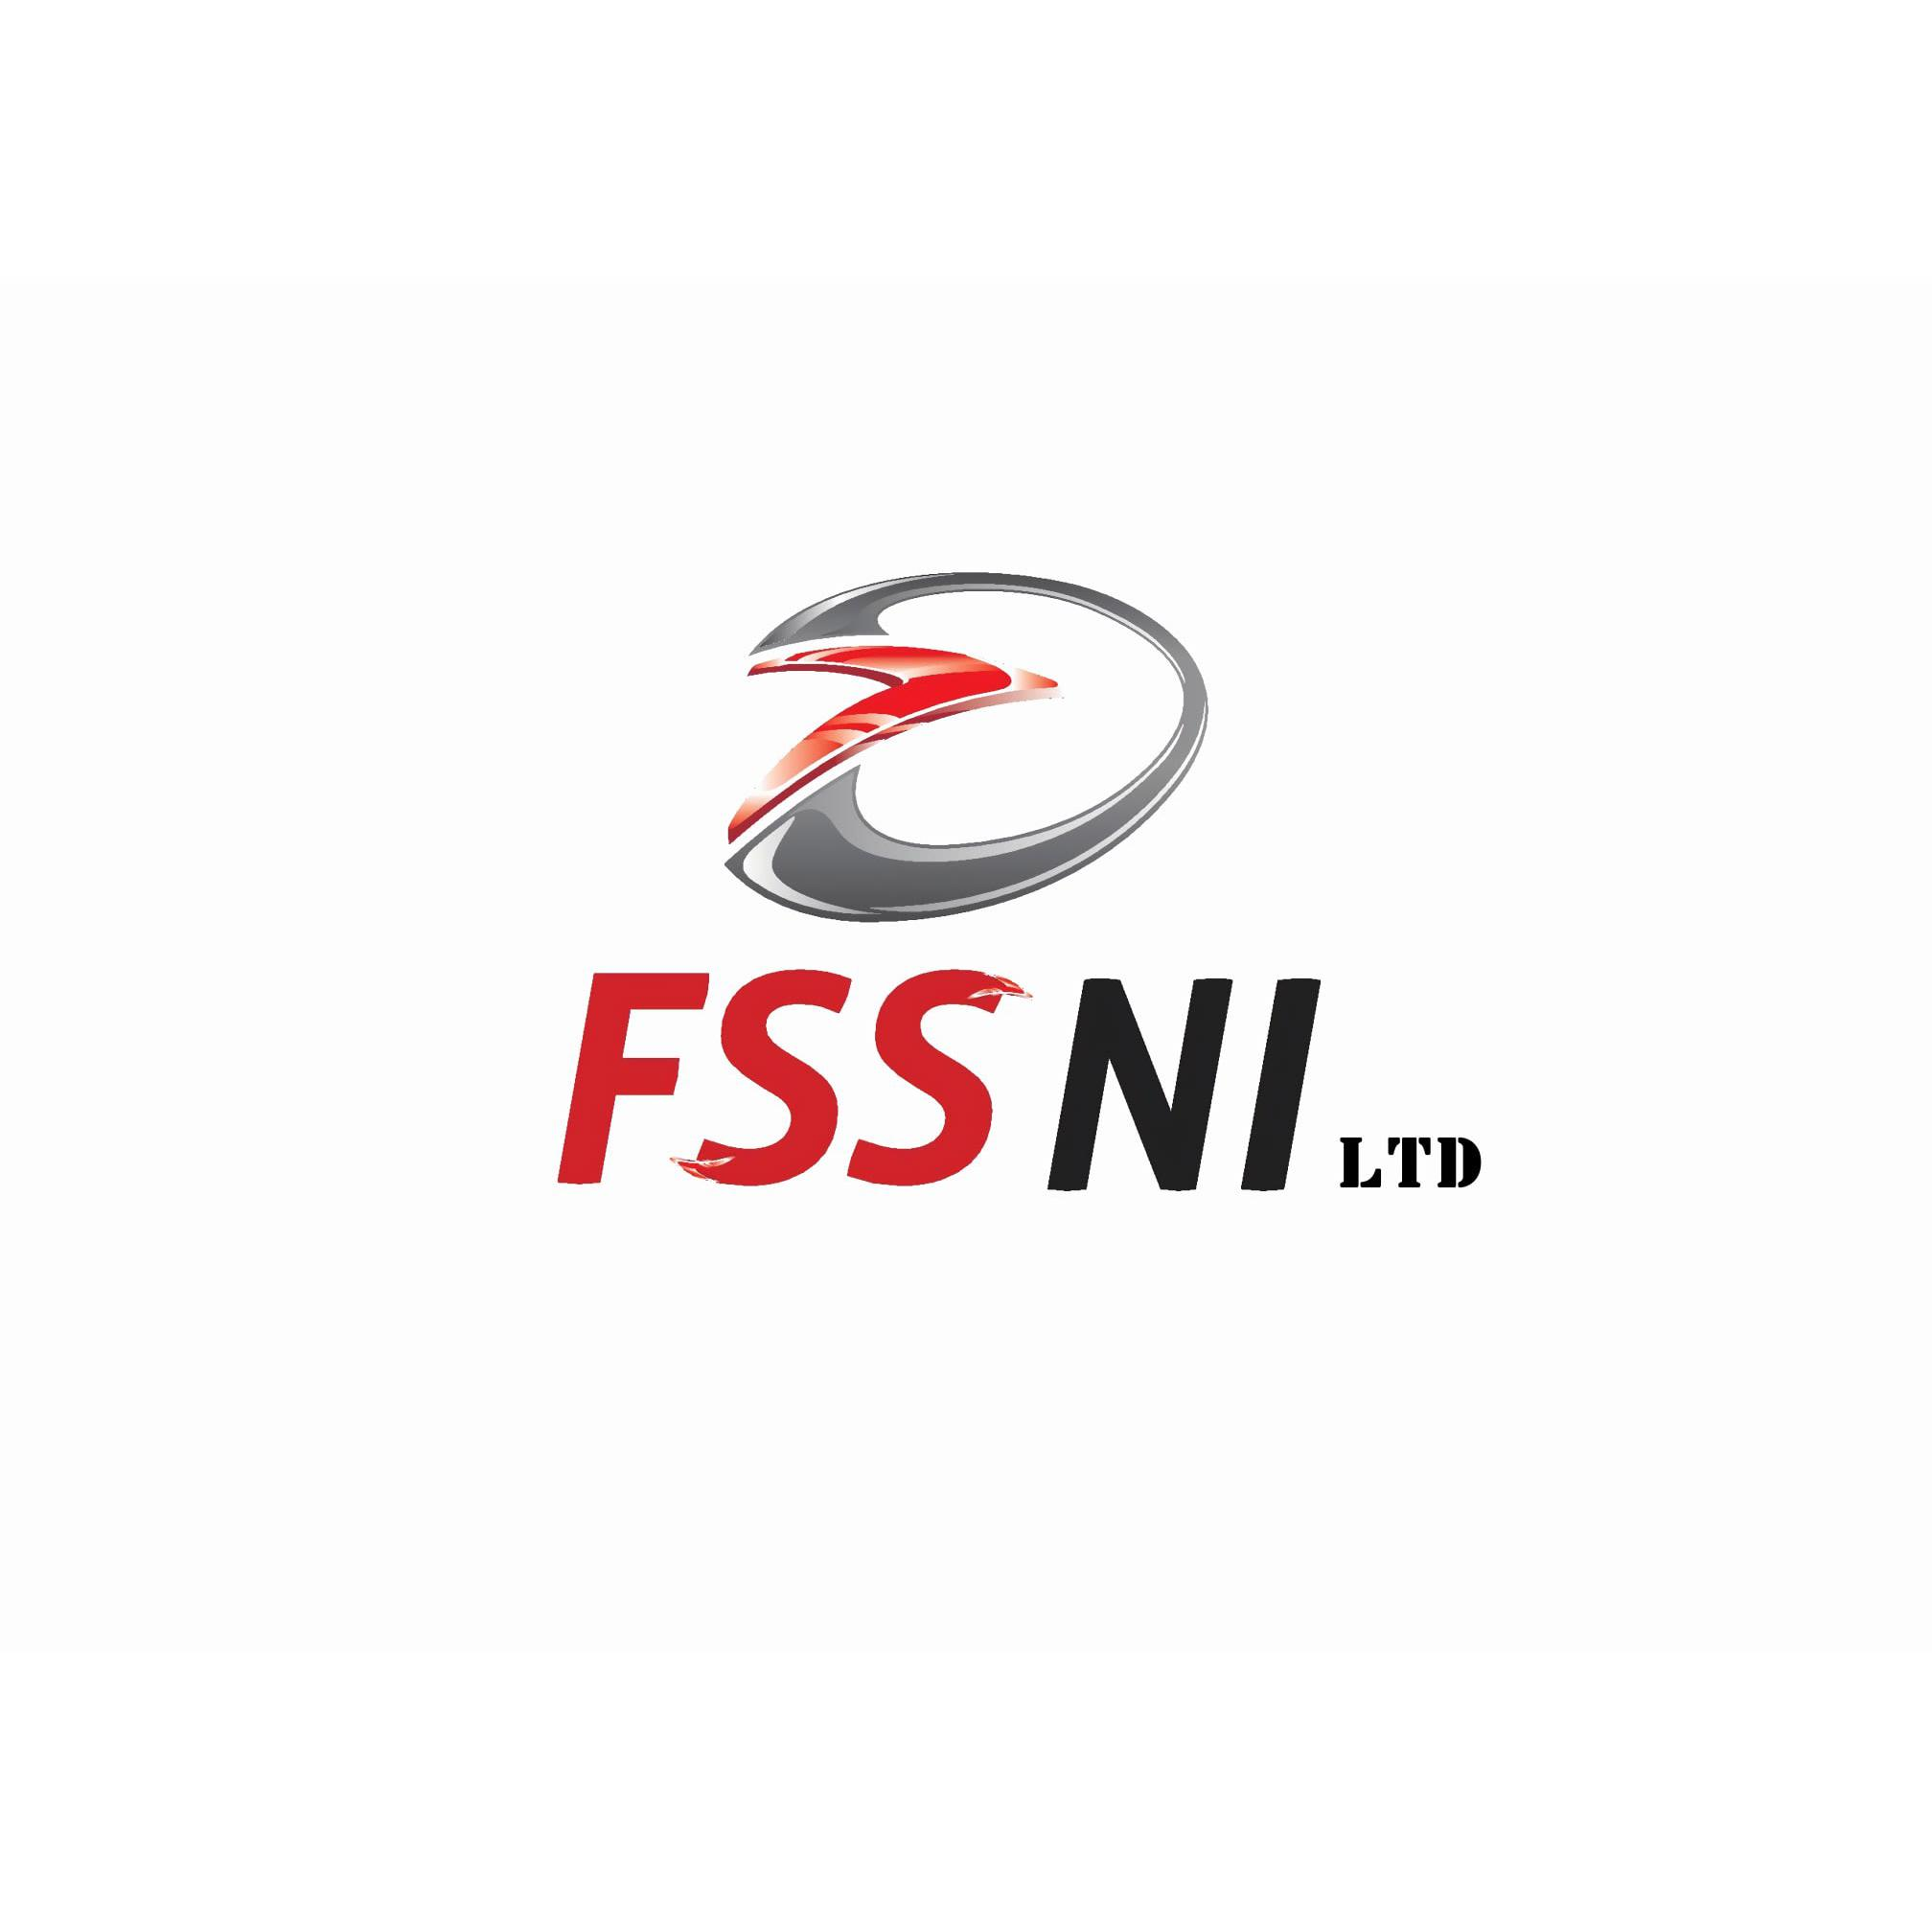 FSSNI Ltd - Newtownabbey, County Antrim BT36 7LS - 02895 430660 | ShowMeLocal.com